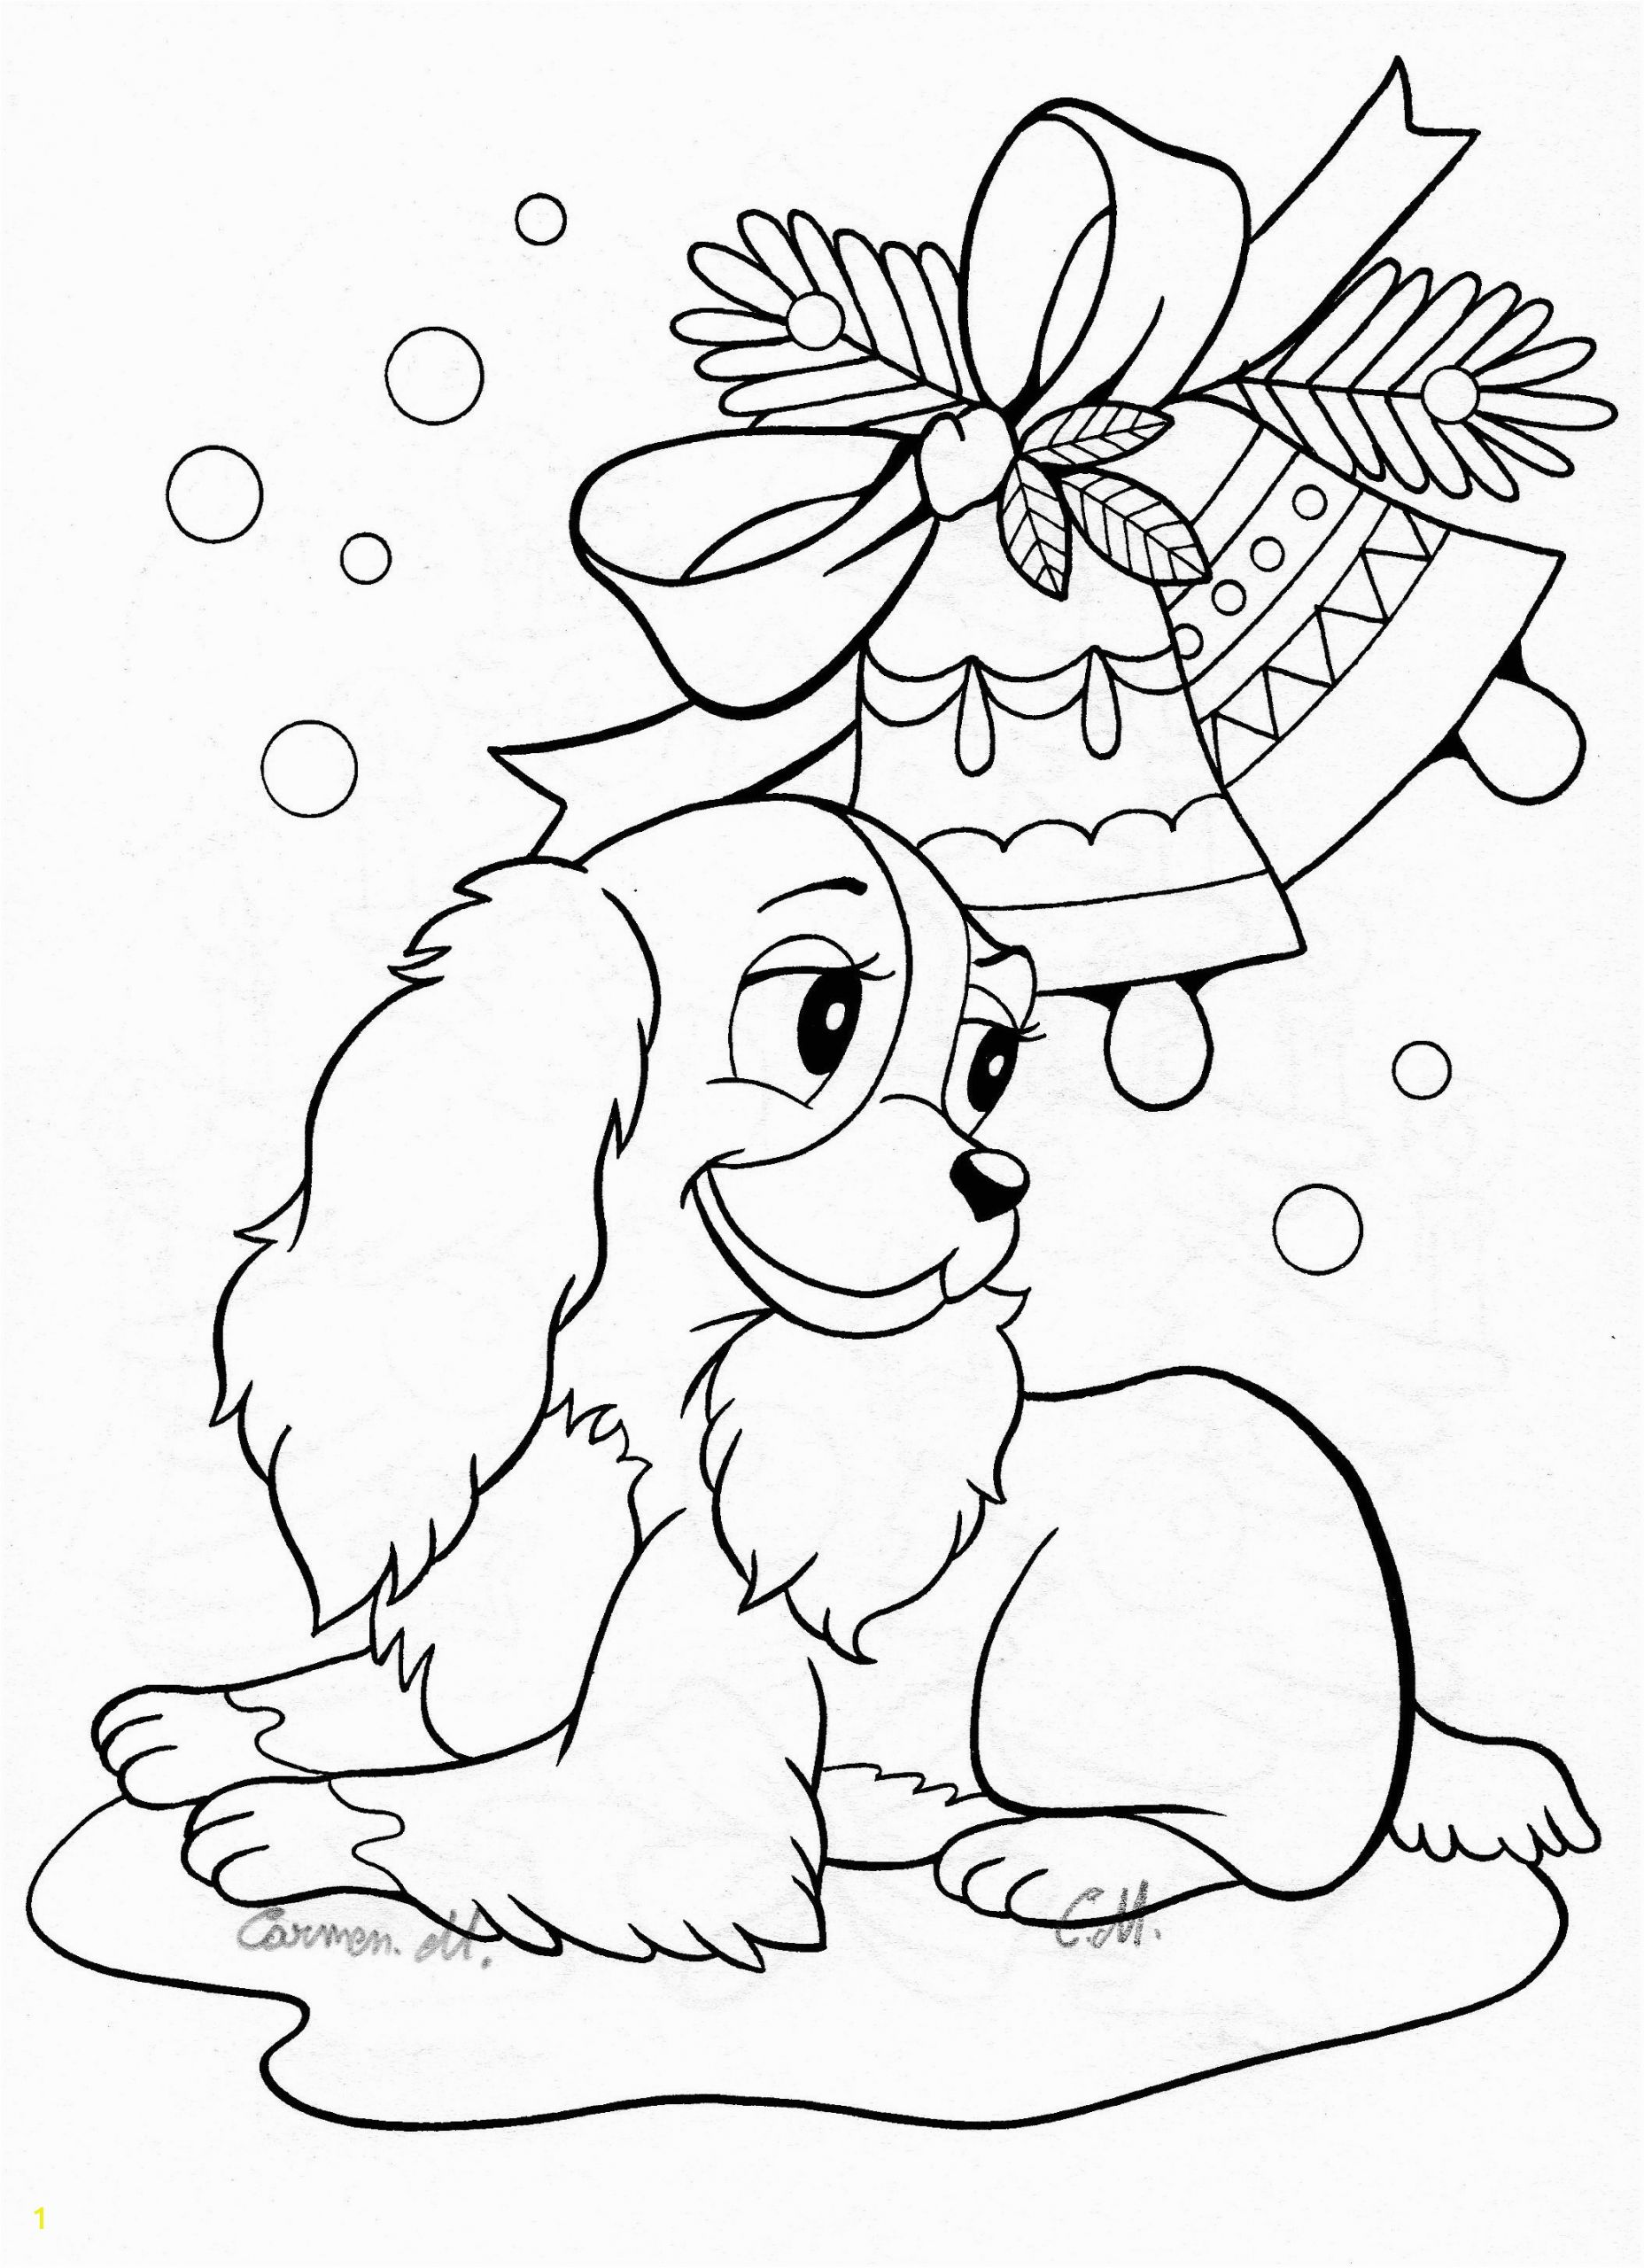 christmas pet coloring pages fresh printable od dog free colouring of animal pictures beautiful me farm sheets for toddlers page batman pdf to color bird princess winter